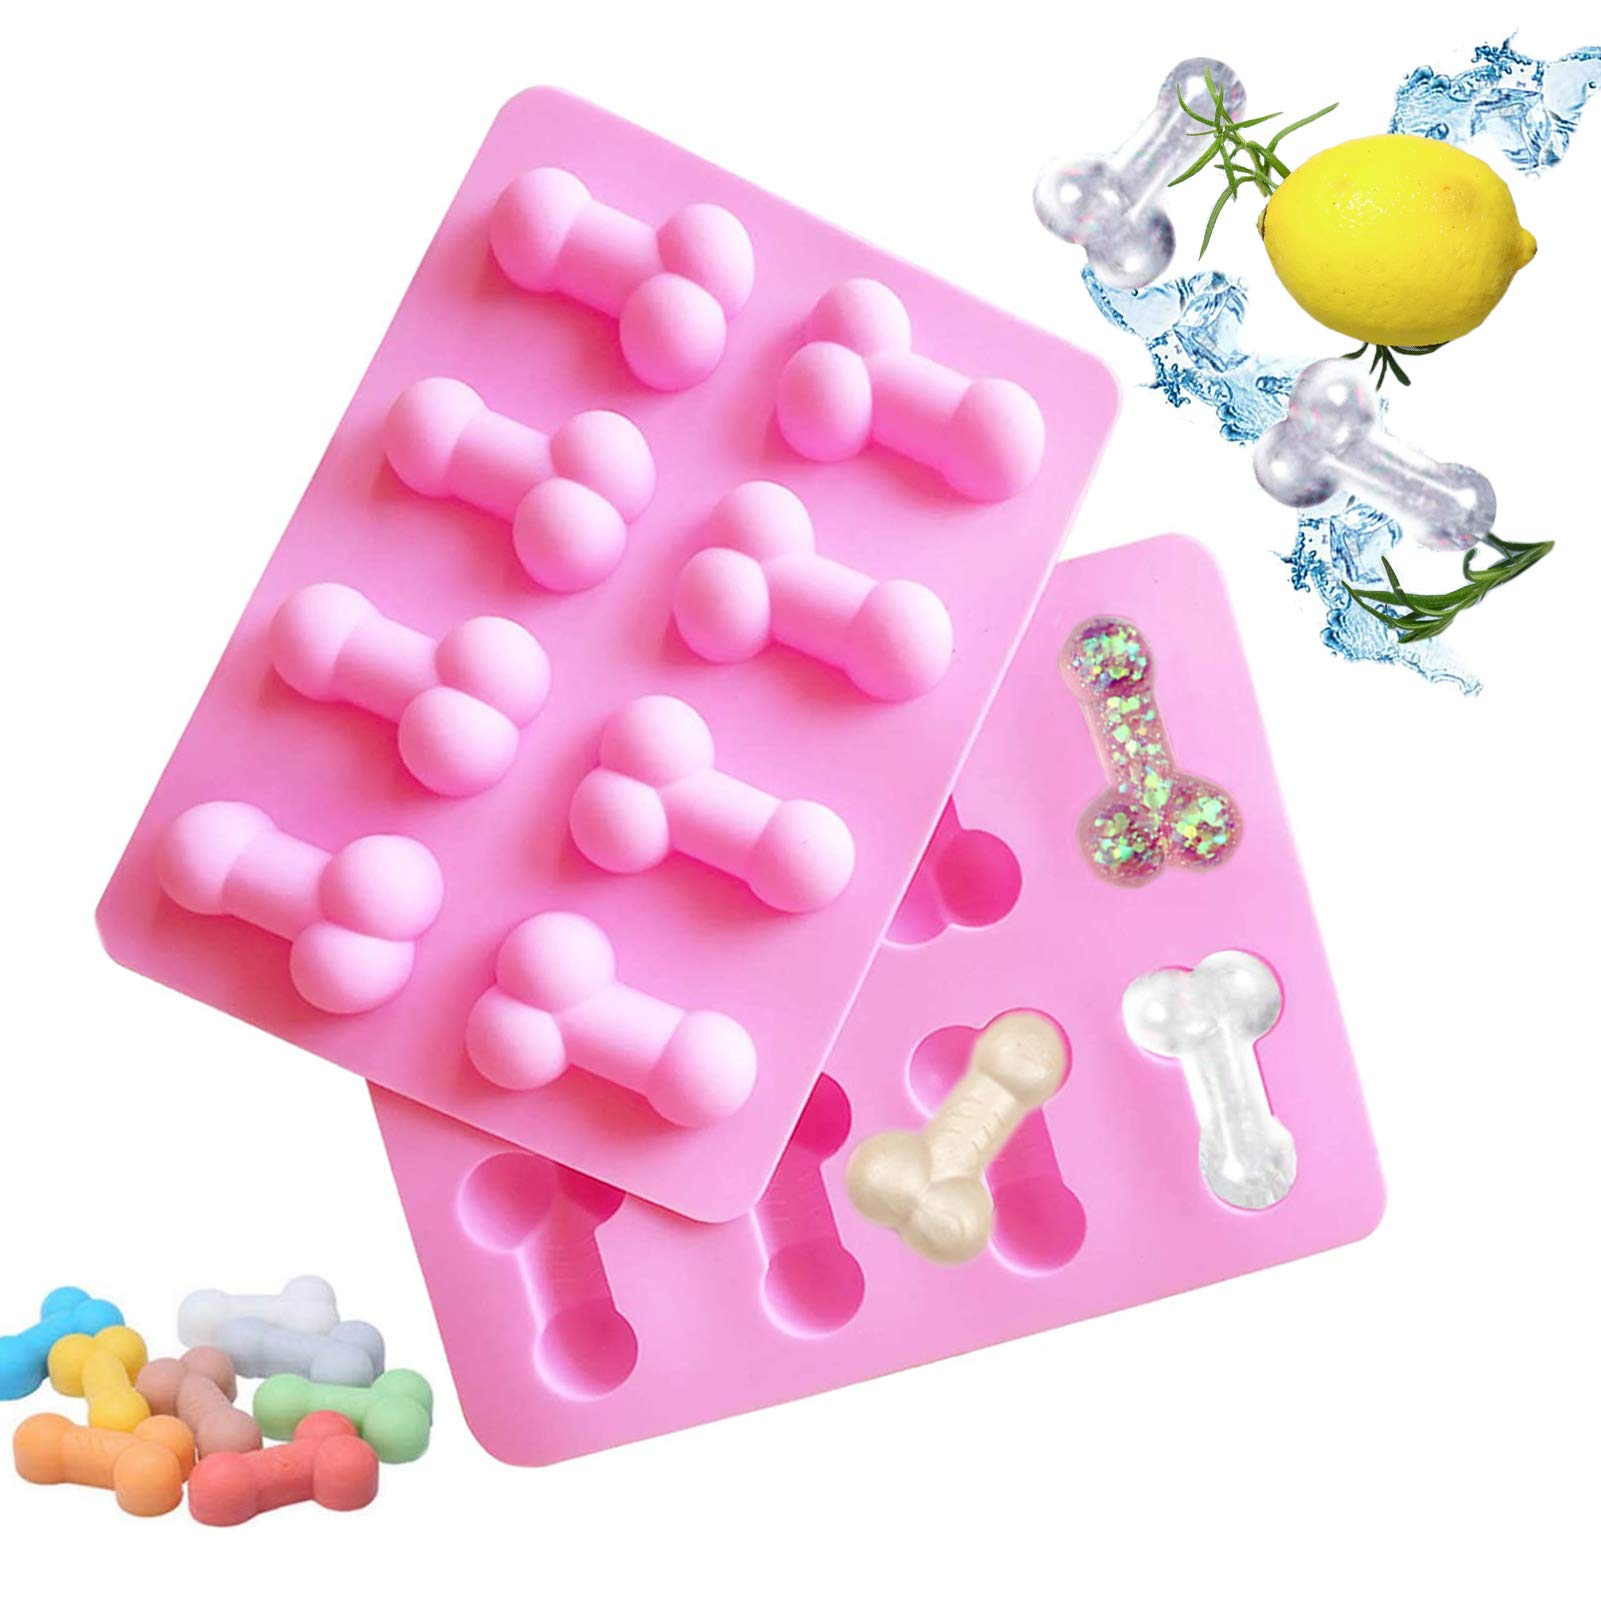 3D Ice Cube Tray Cake Chocolate MouldsBirthday Silicone Baking Novelty Funny DIYSuitable